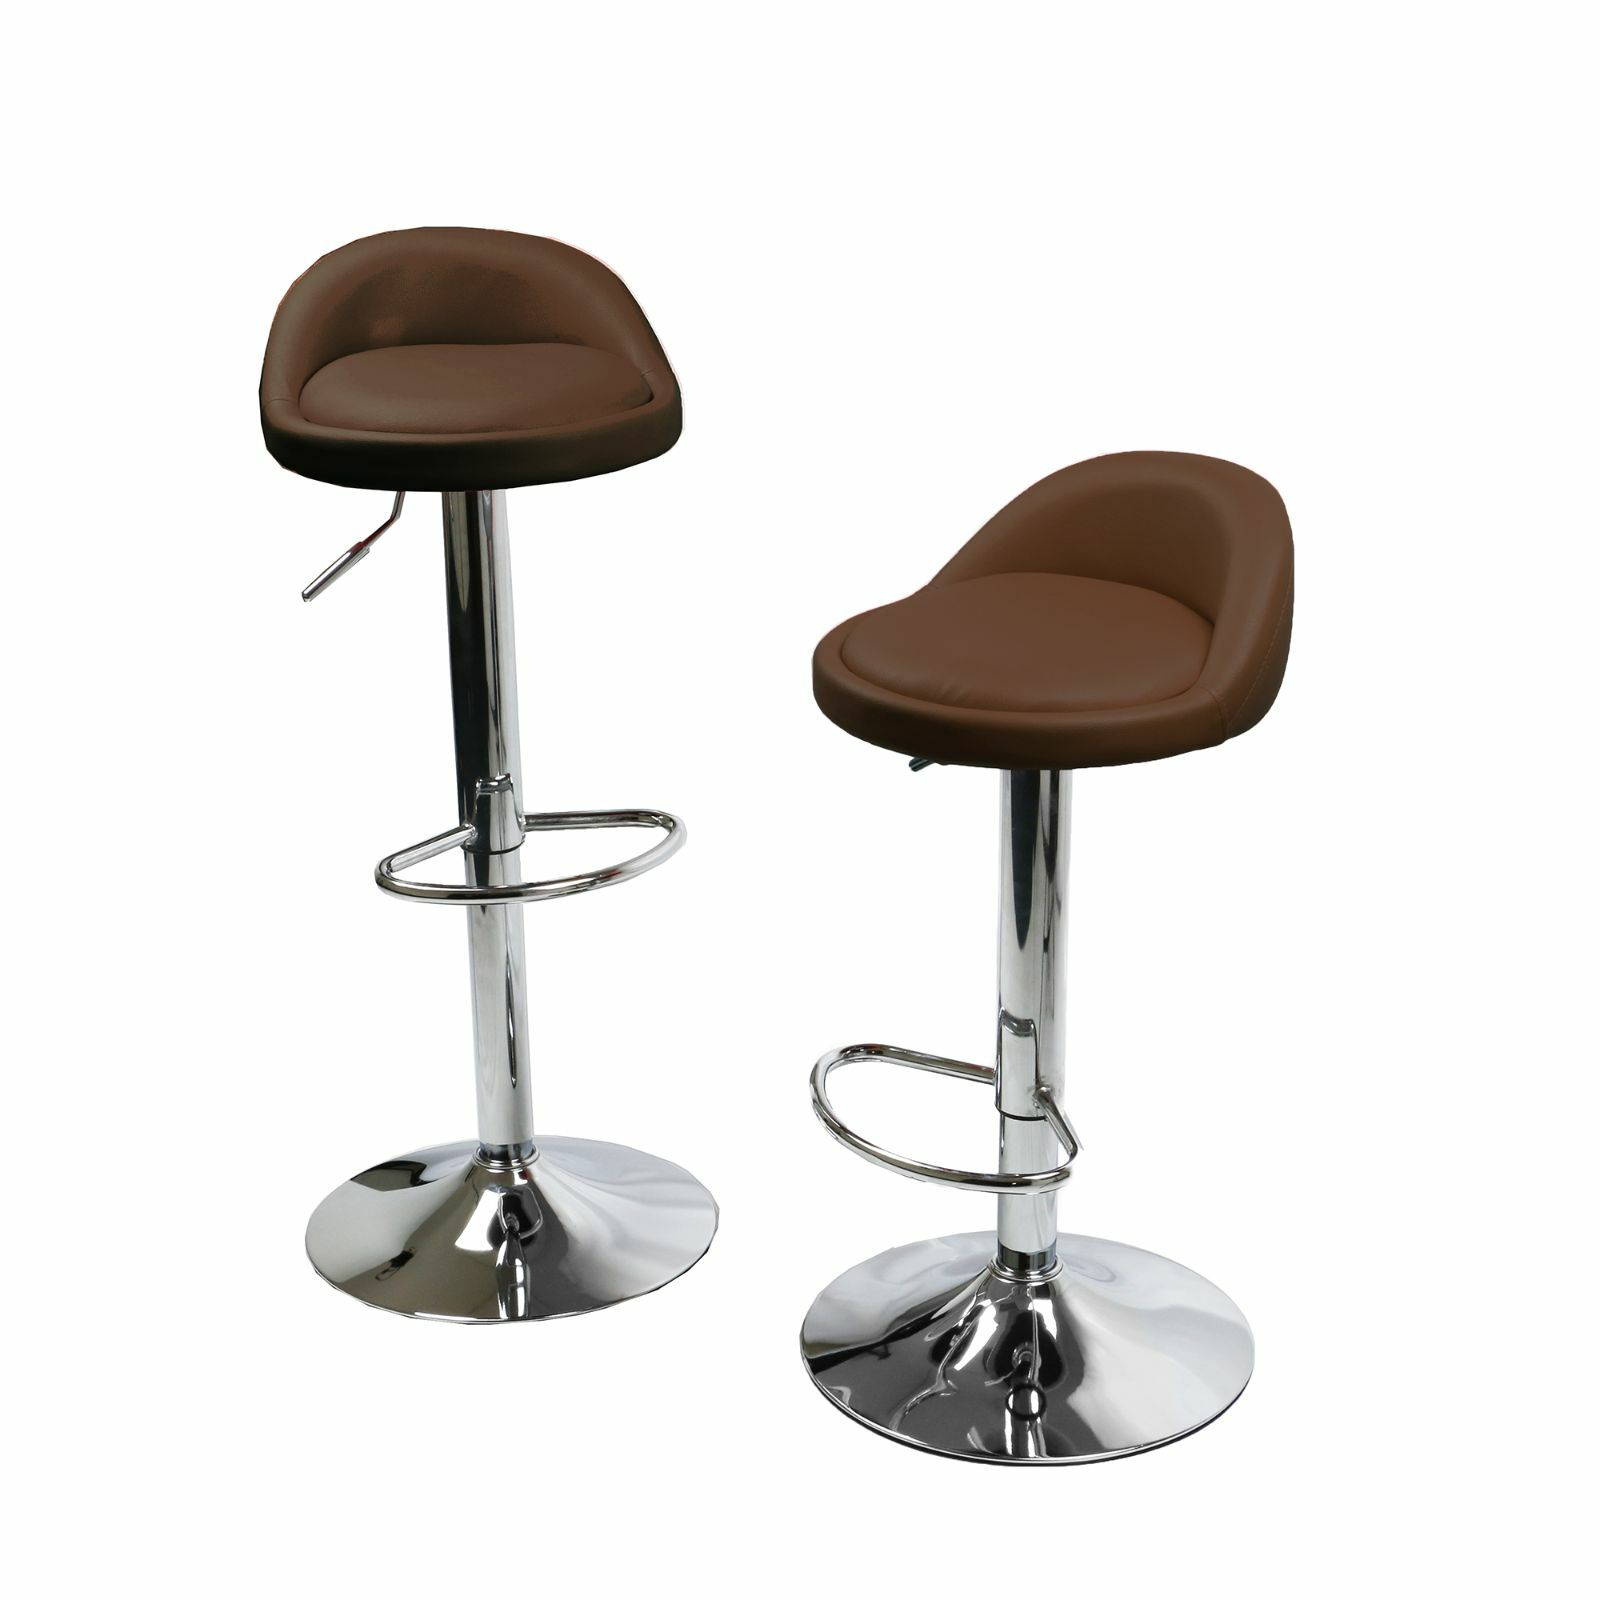 1 Pair Leather Metal Bar Stools Swivel Dinning Counter